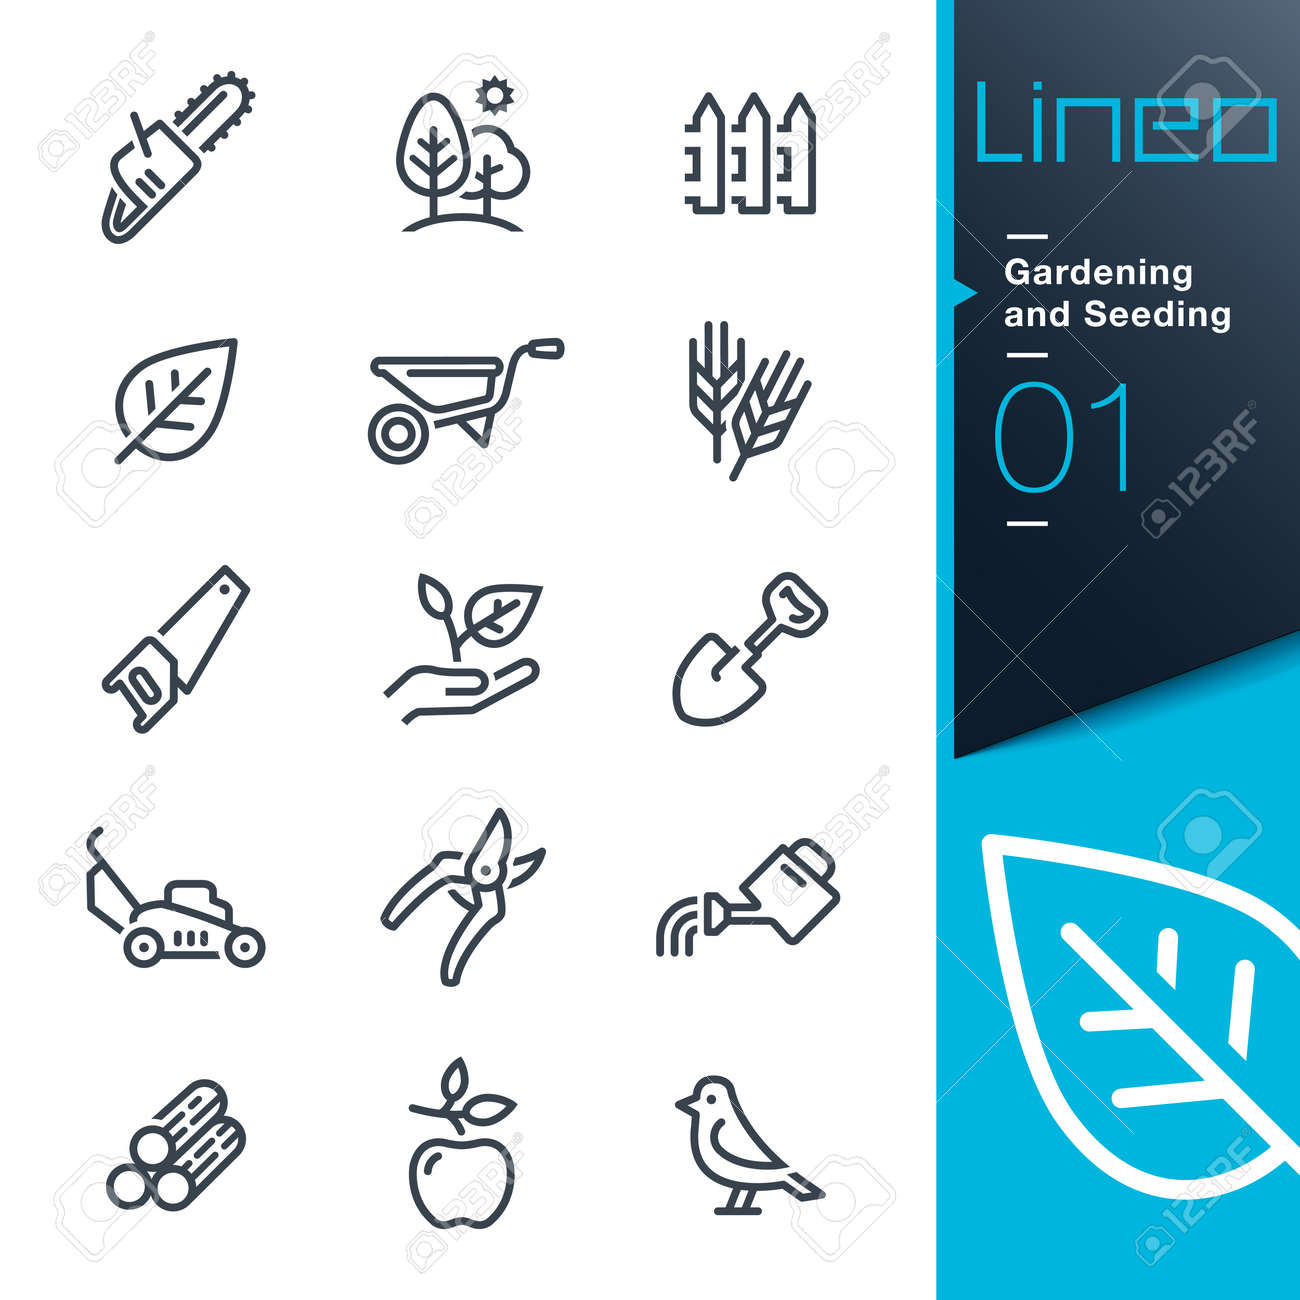 Lineo - Gardening and Seeding line icons - 66552190